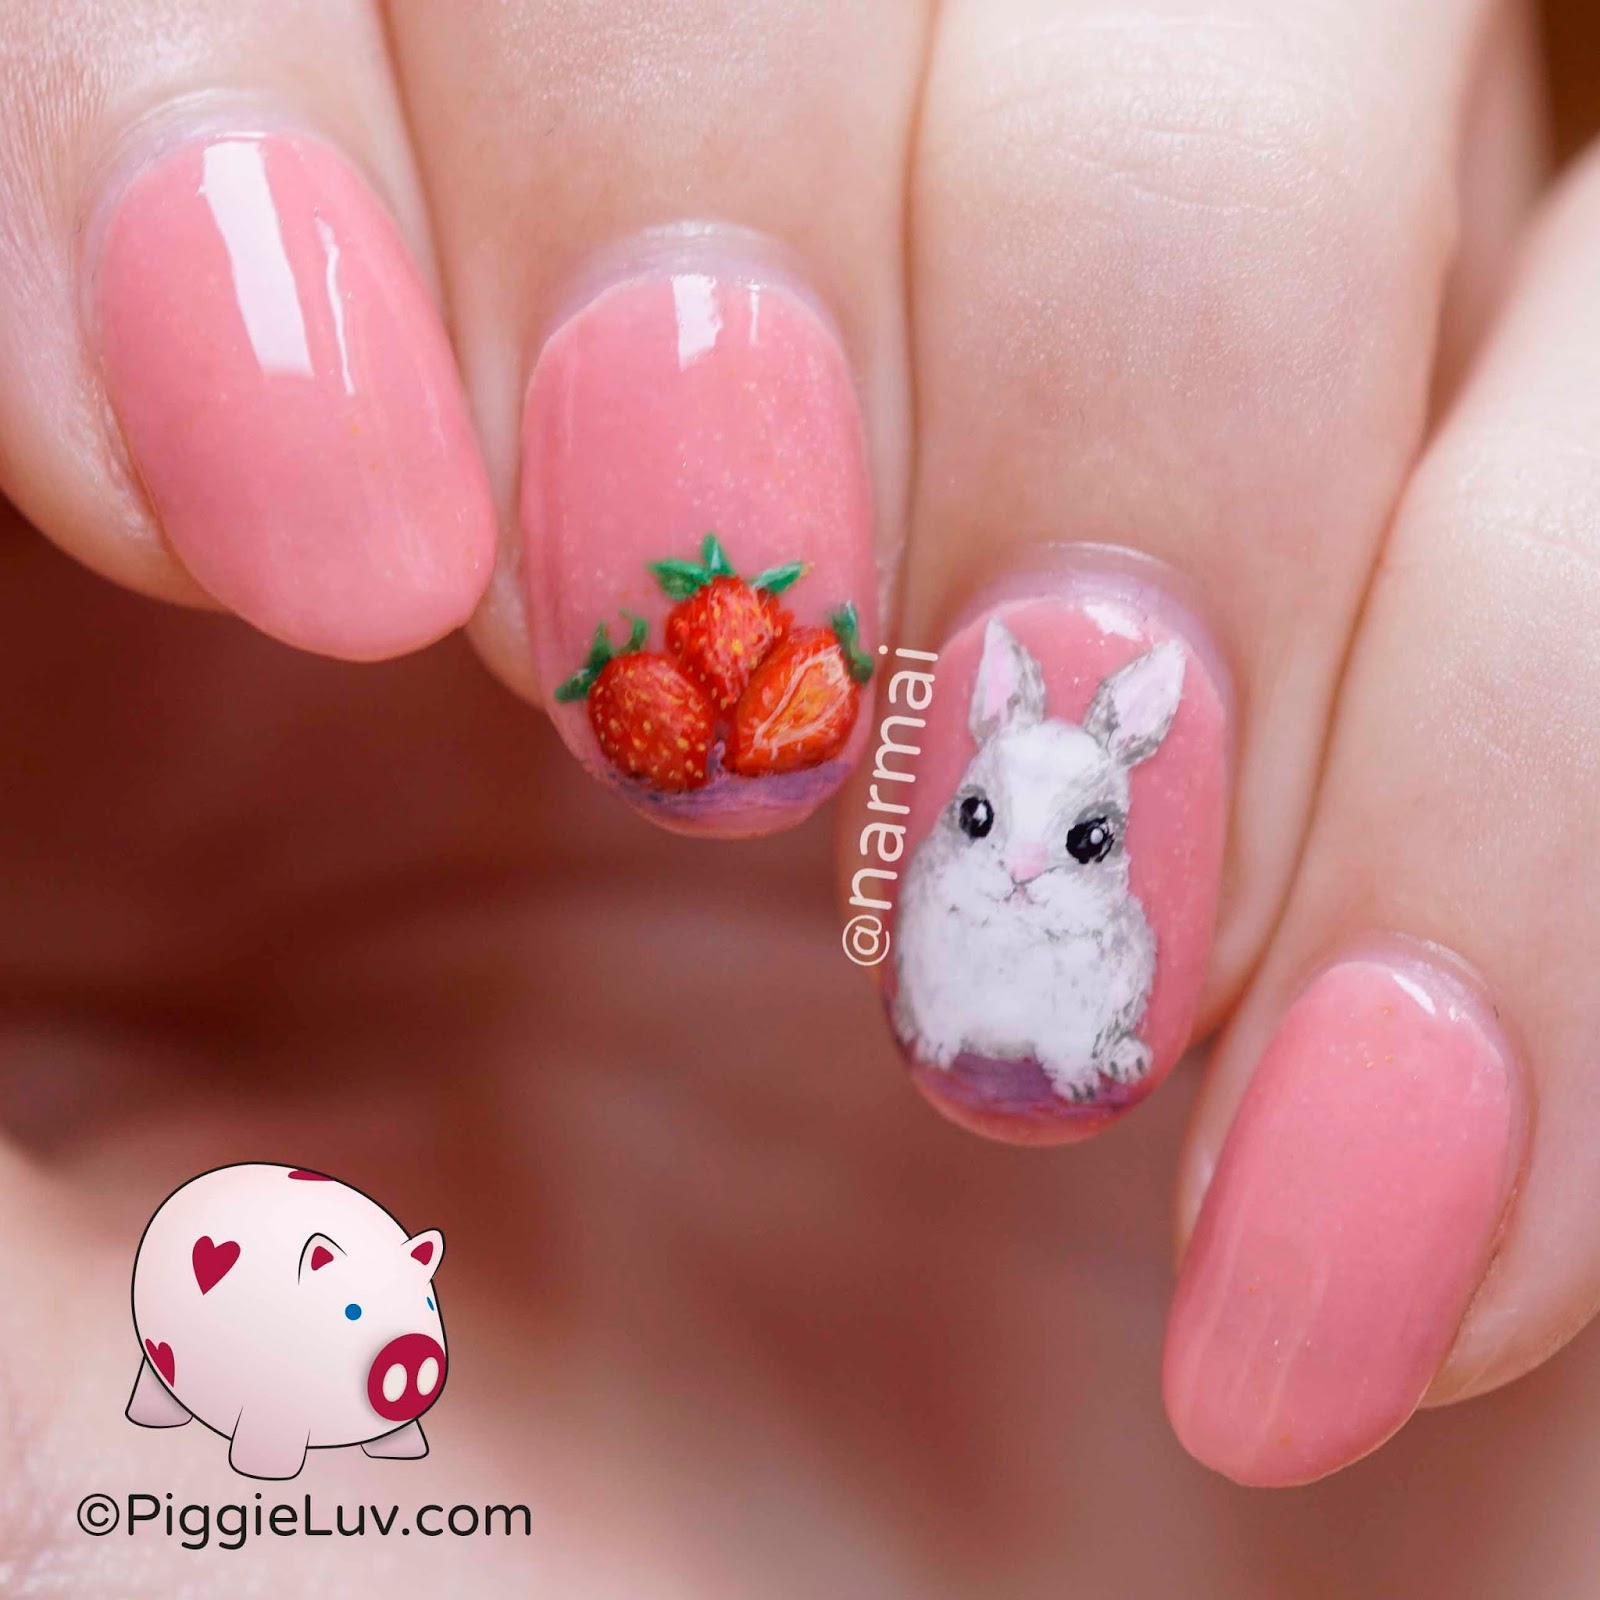 PiggieLuv: Freehand strawberry bunny nail art